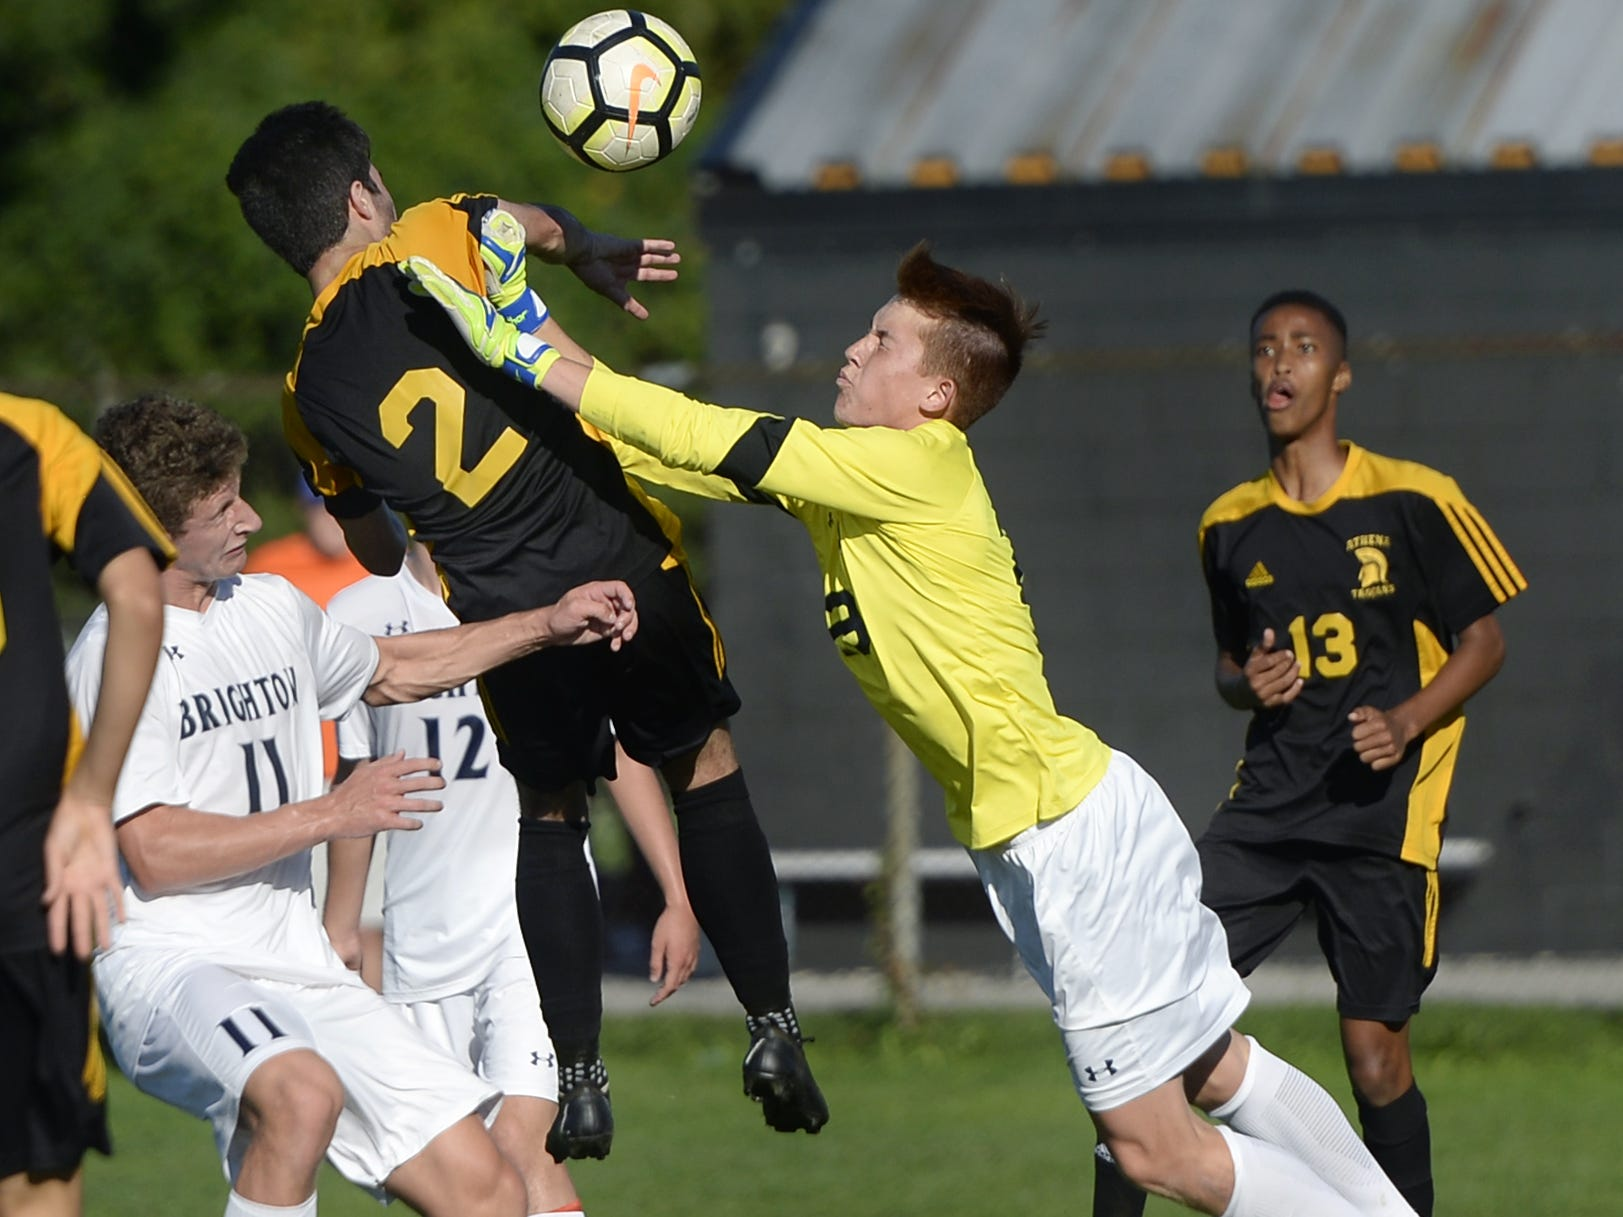 Brighton goalie Christian Burkhart dives to punch the ball away from Greece Athena's Ryan Burns (2) during a regular season game played at Greece Athena High School, Thursday, Sept. 13, 2018. Greece Athena beat Brighton 1-0.